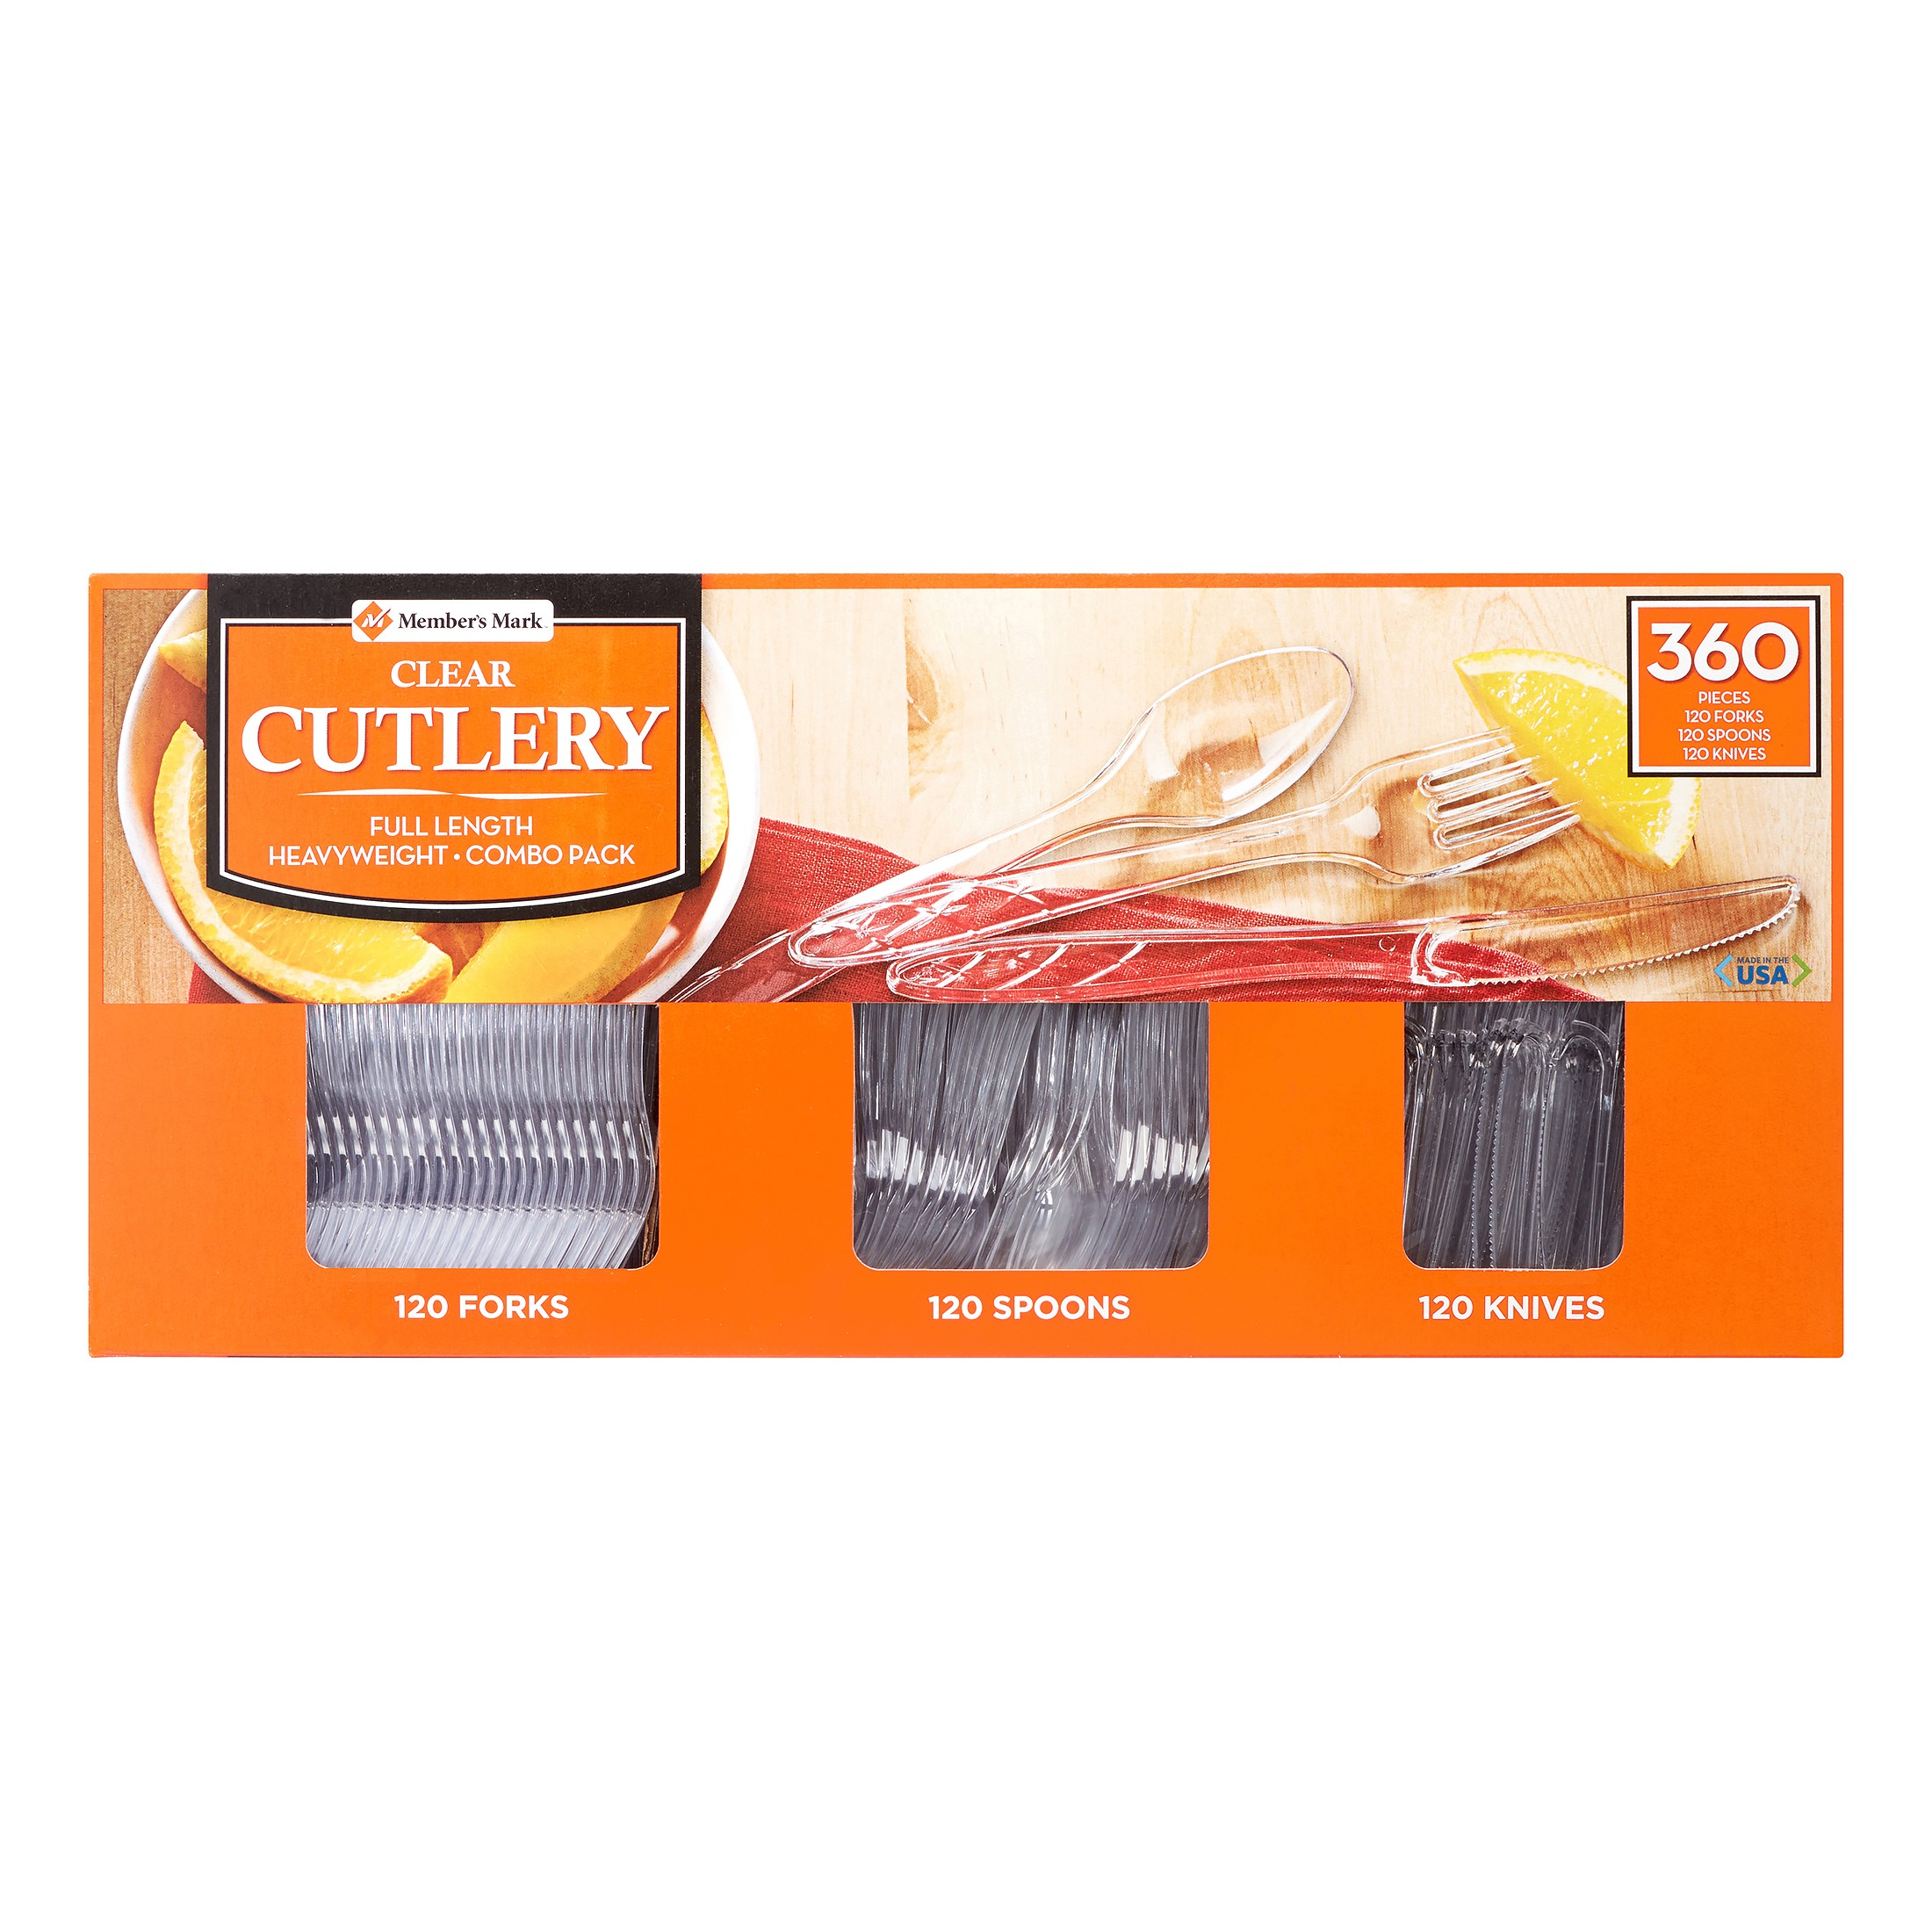 Daily Chef Cutlery Combo Pack, Clear, 360 Ct